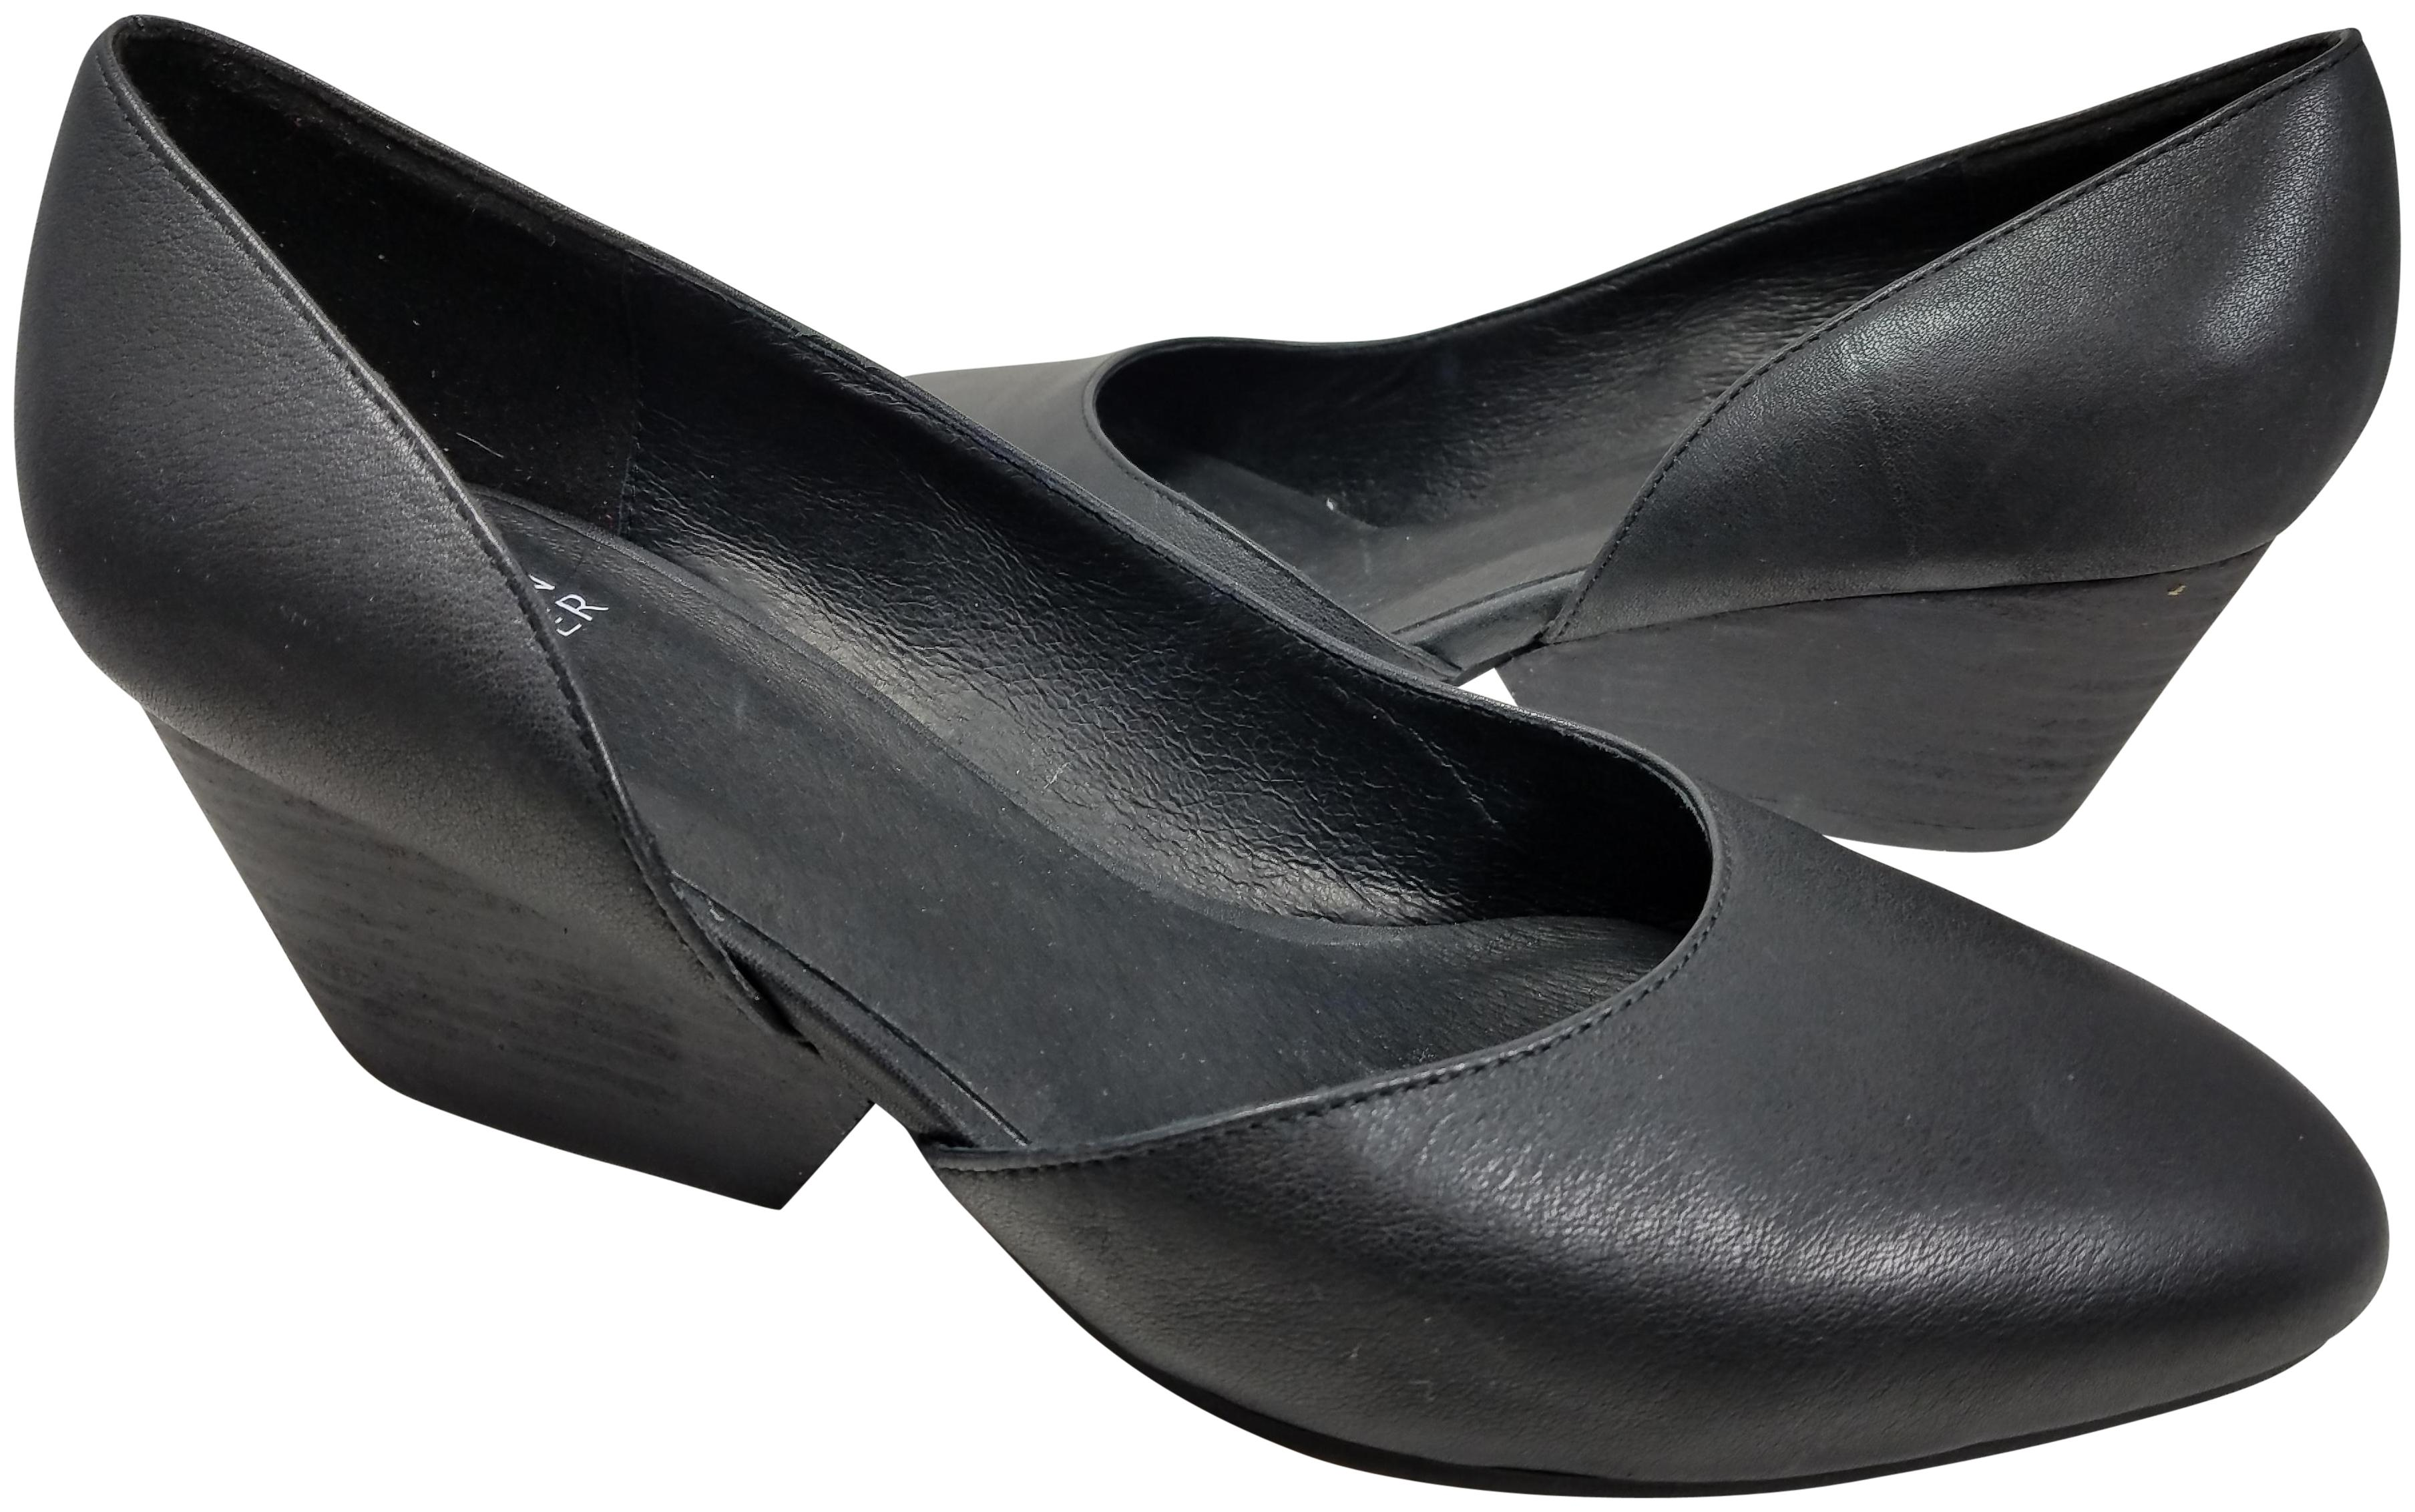 Eileen Fisher Womens LILY Leather Almond Toe Mules Black Size 8.0